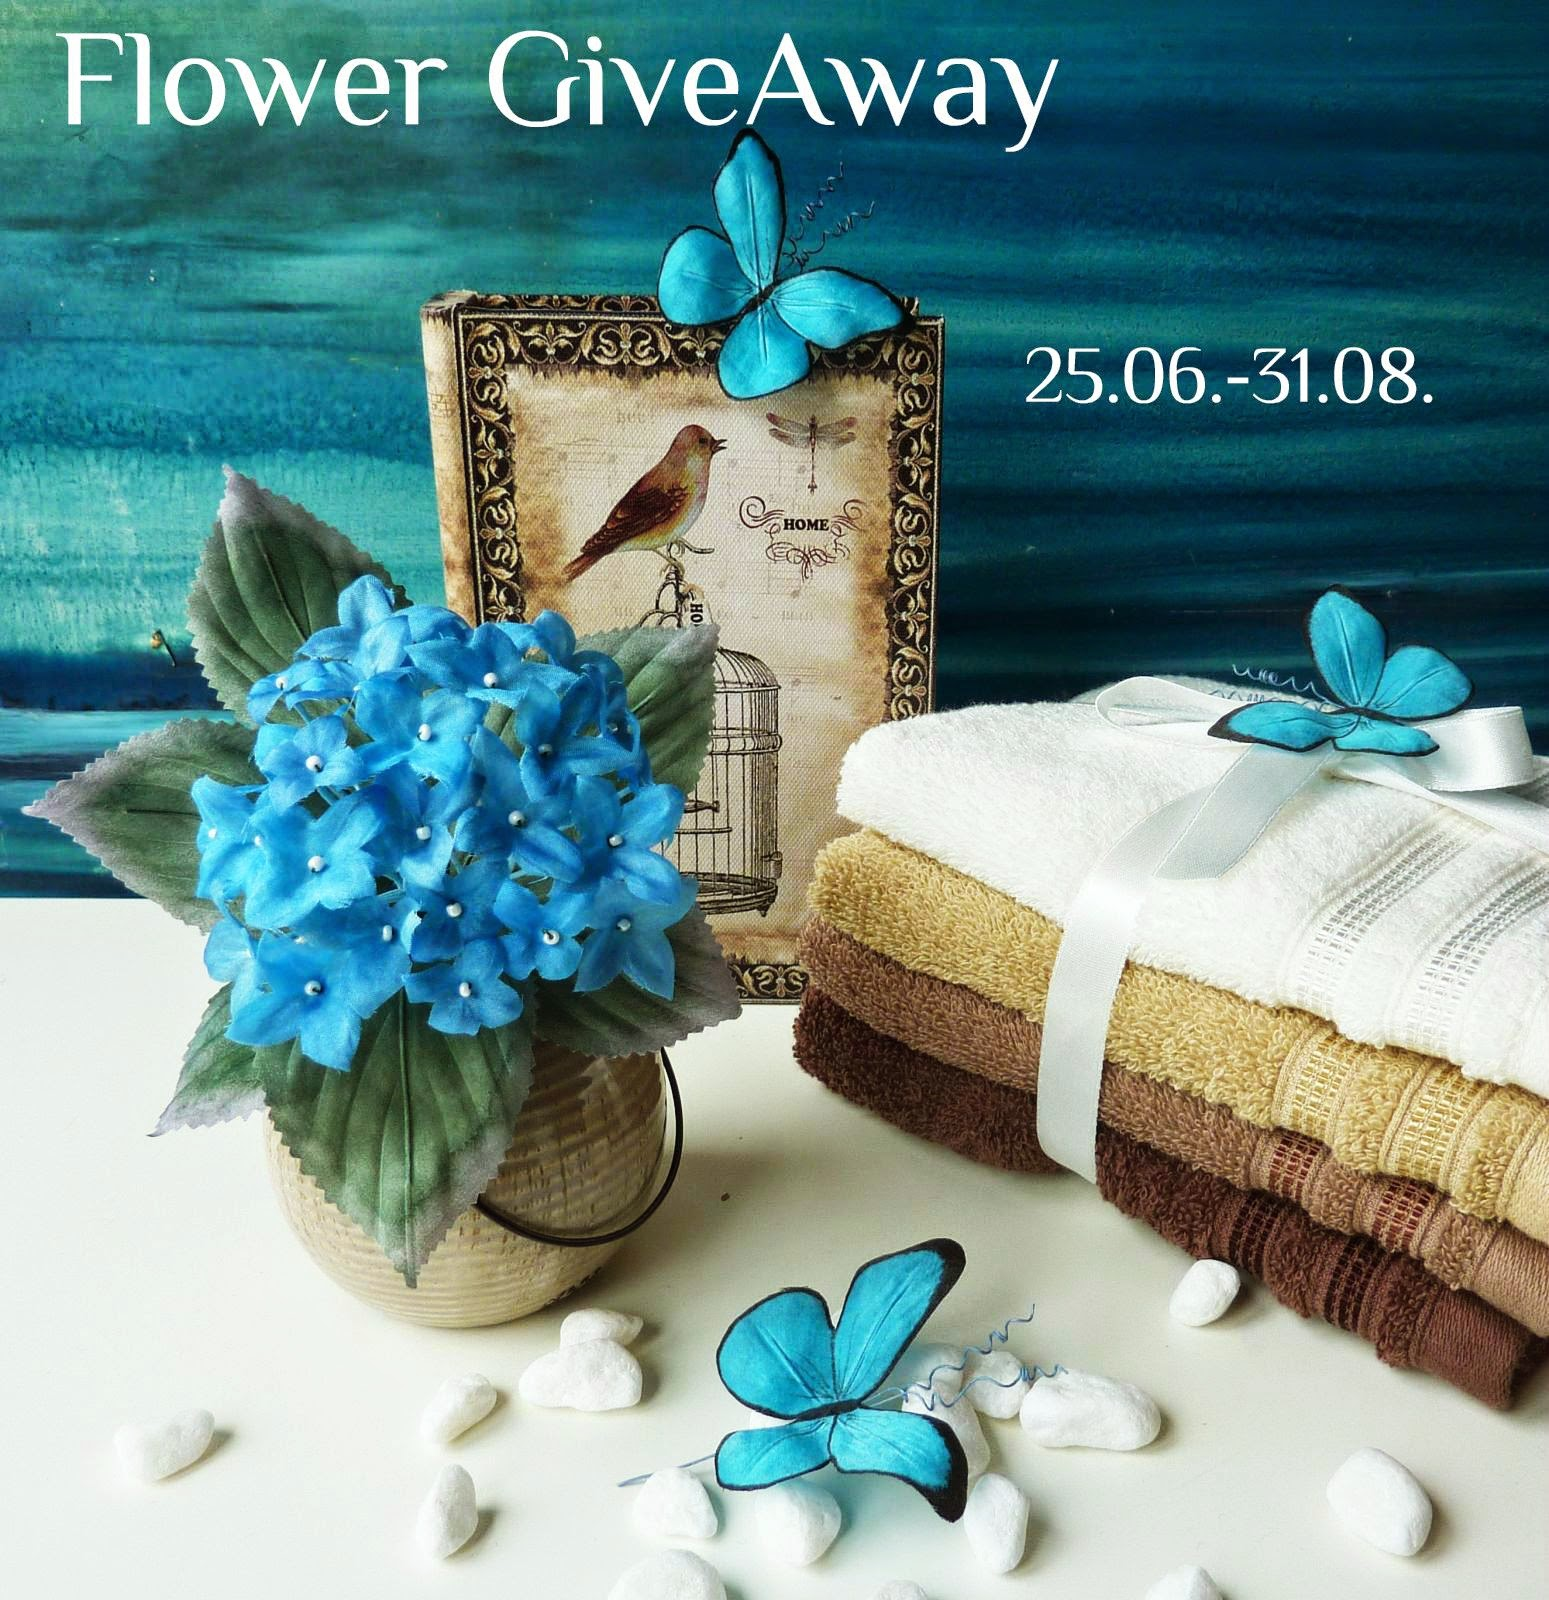 Flower GiveAway